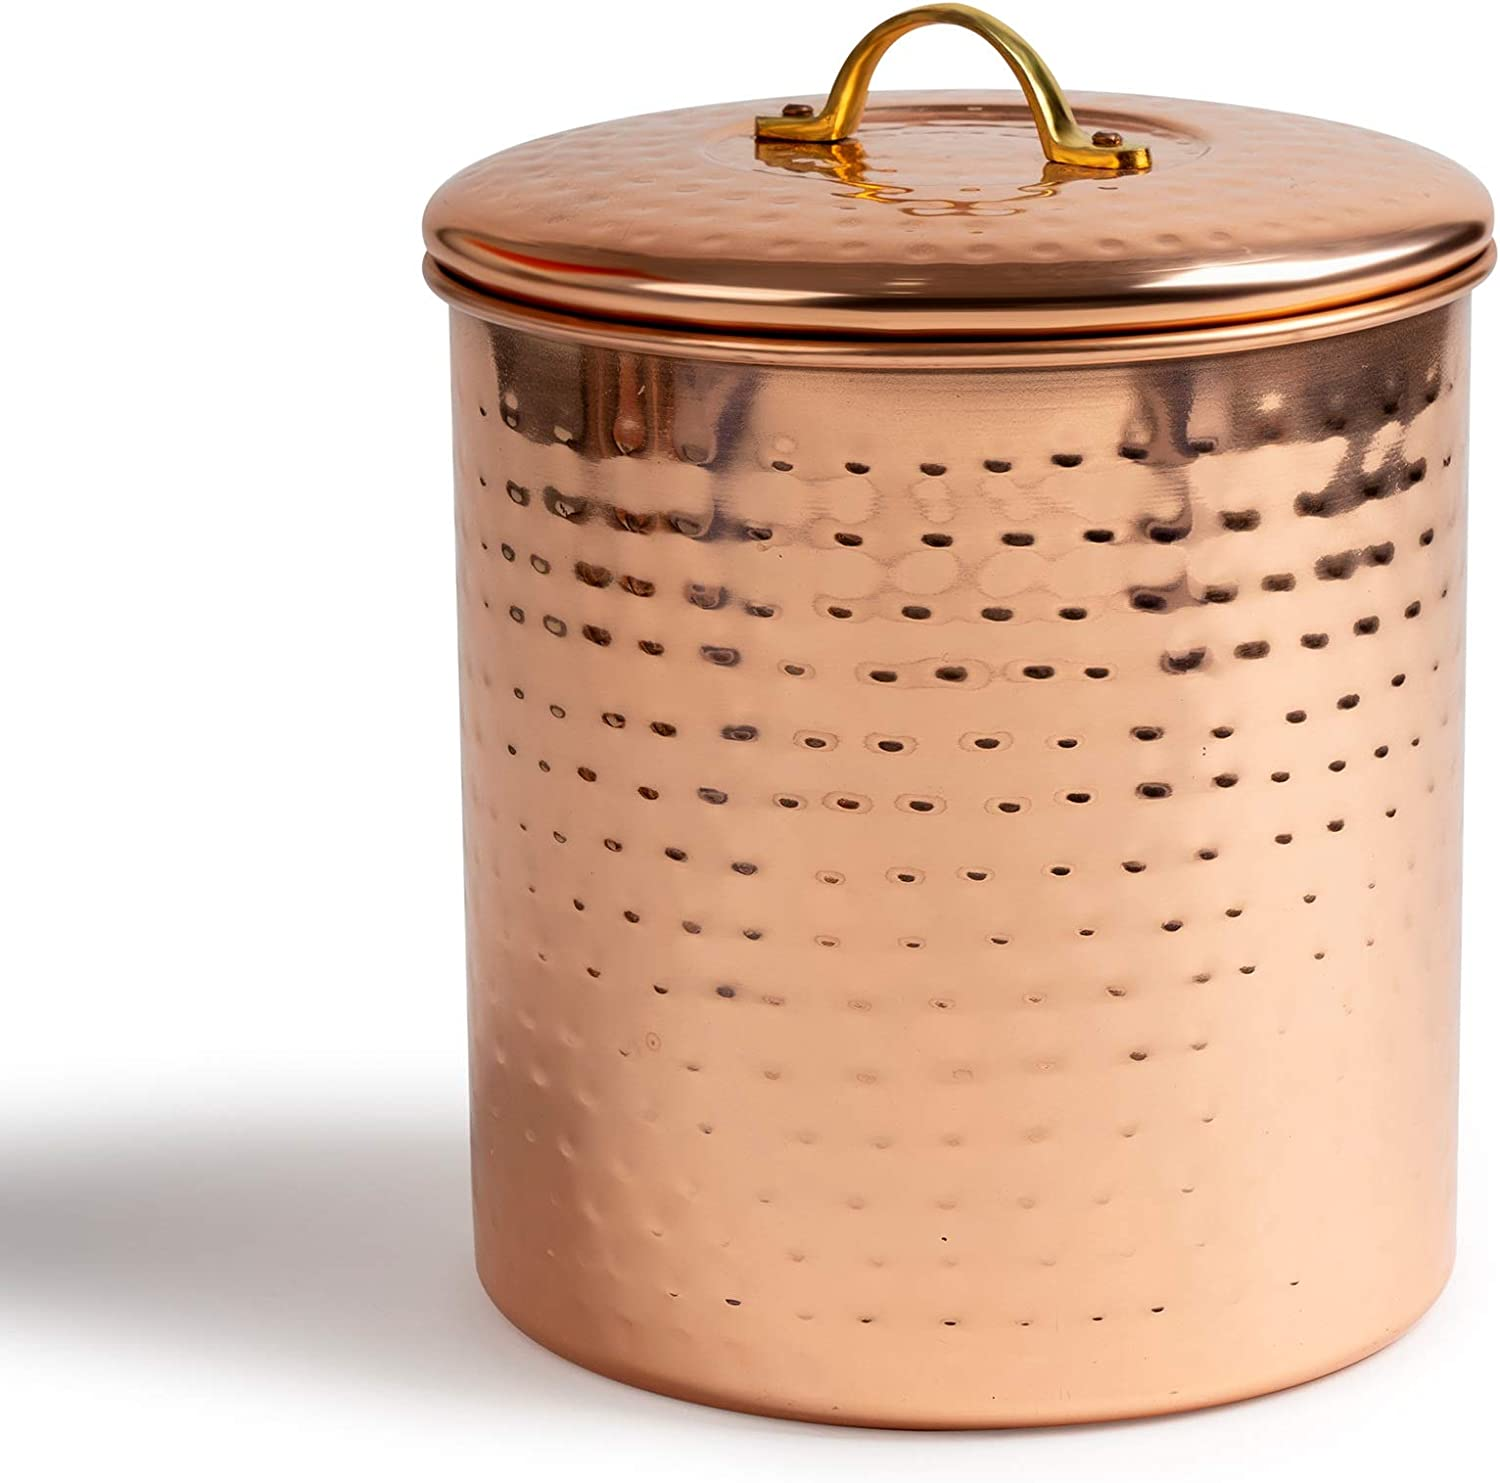 NuSteel Hammered 1.5 QT Stainless Steel, Beautiful Food Storage Container for Kitchen Counter, Tea, Sugar, Coffee, Caddy, Flour Canister with Rubber Seal lid, Copper Plated